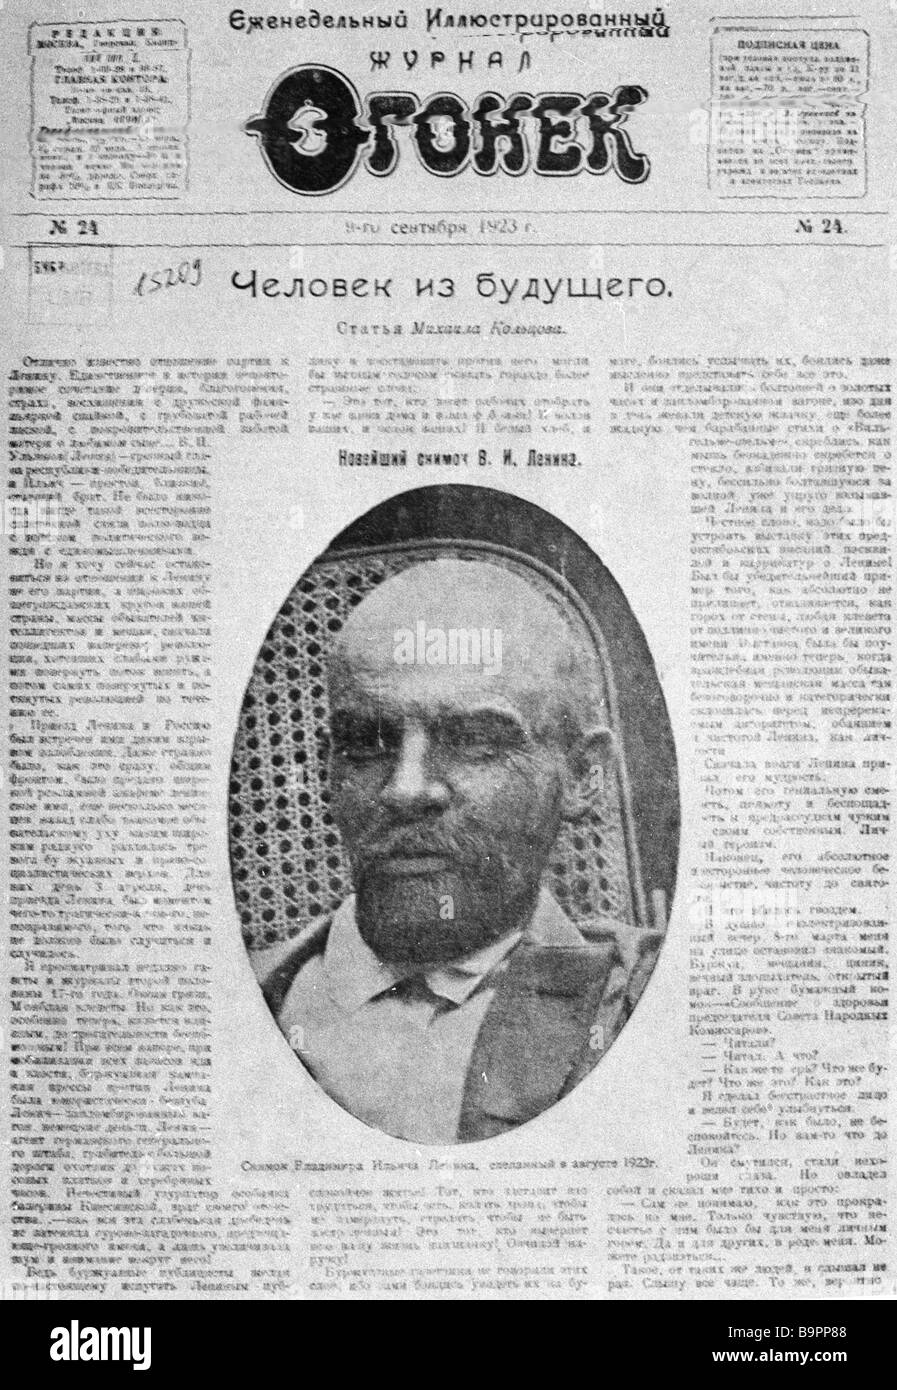 A rare photo of Vladimir Lenin made during his disease in August 1923 published in the Ogonyok magazine - Stock Image